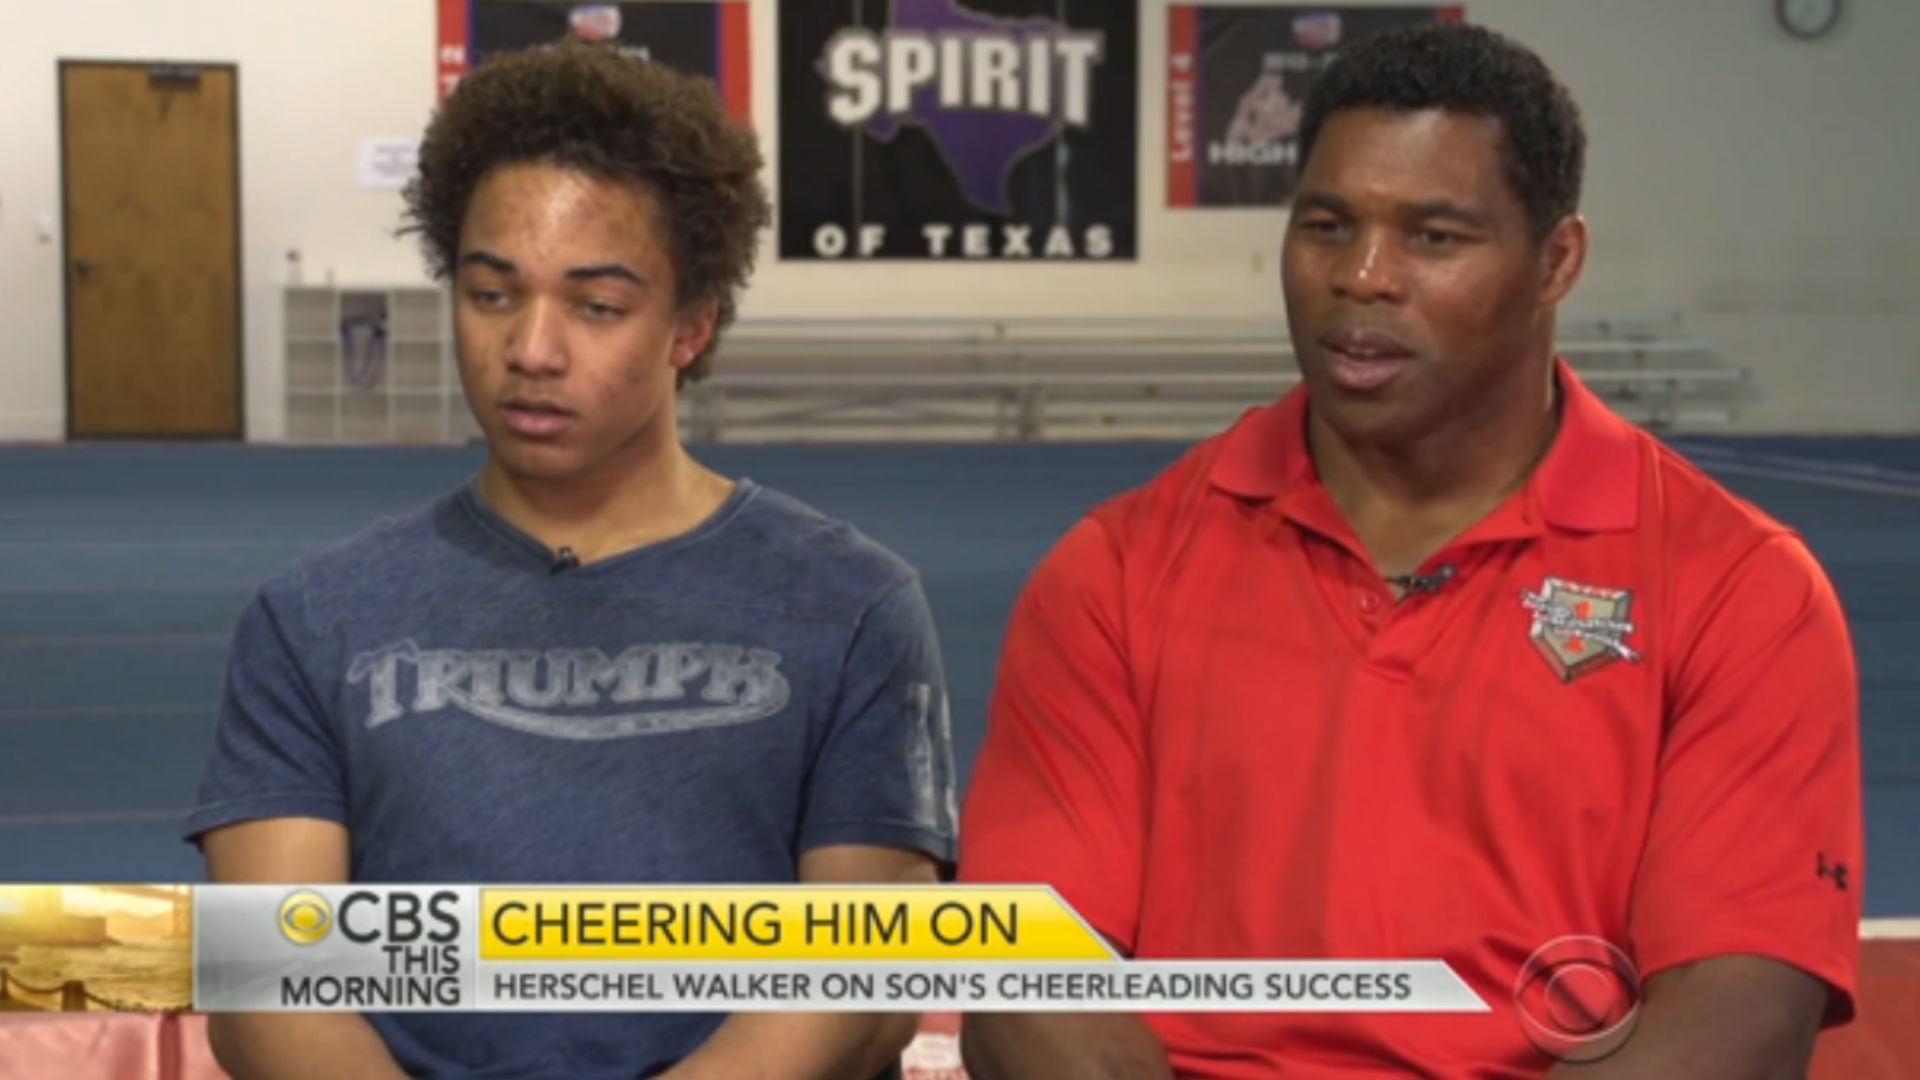 Herschel Walker proudly supports cheerleading son